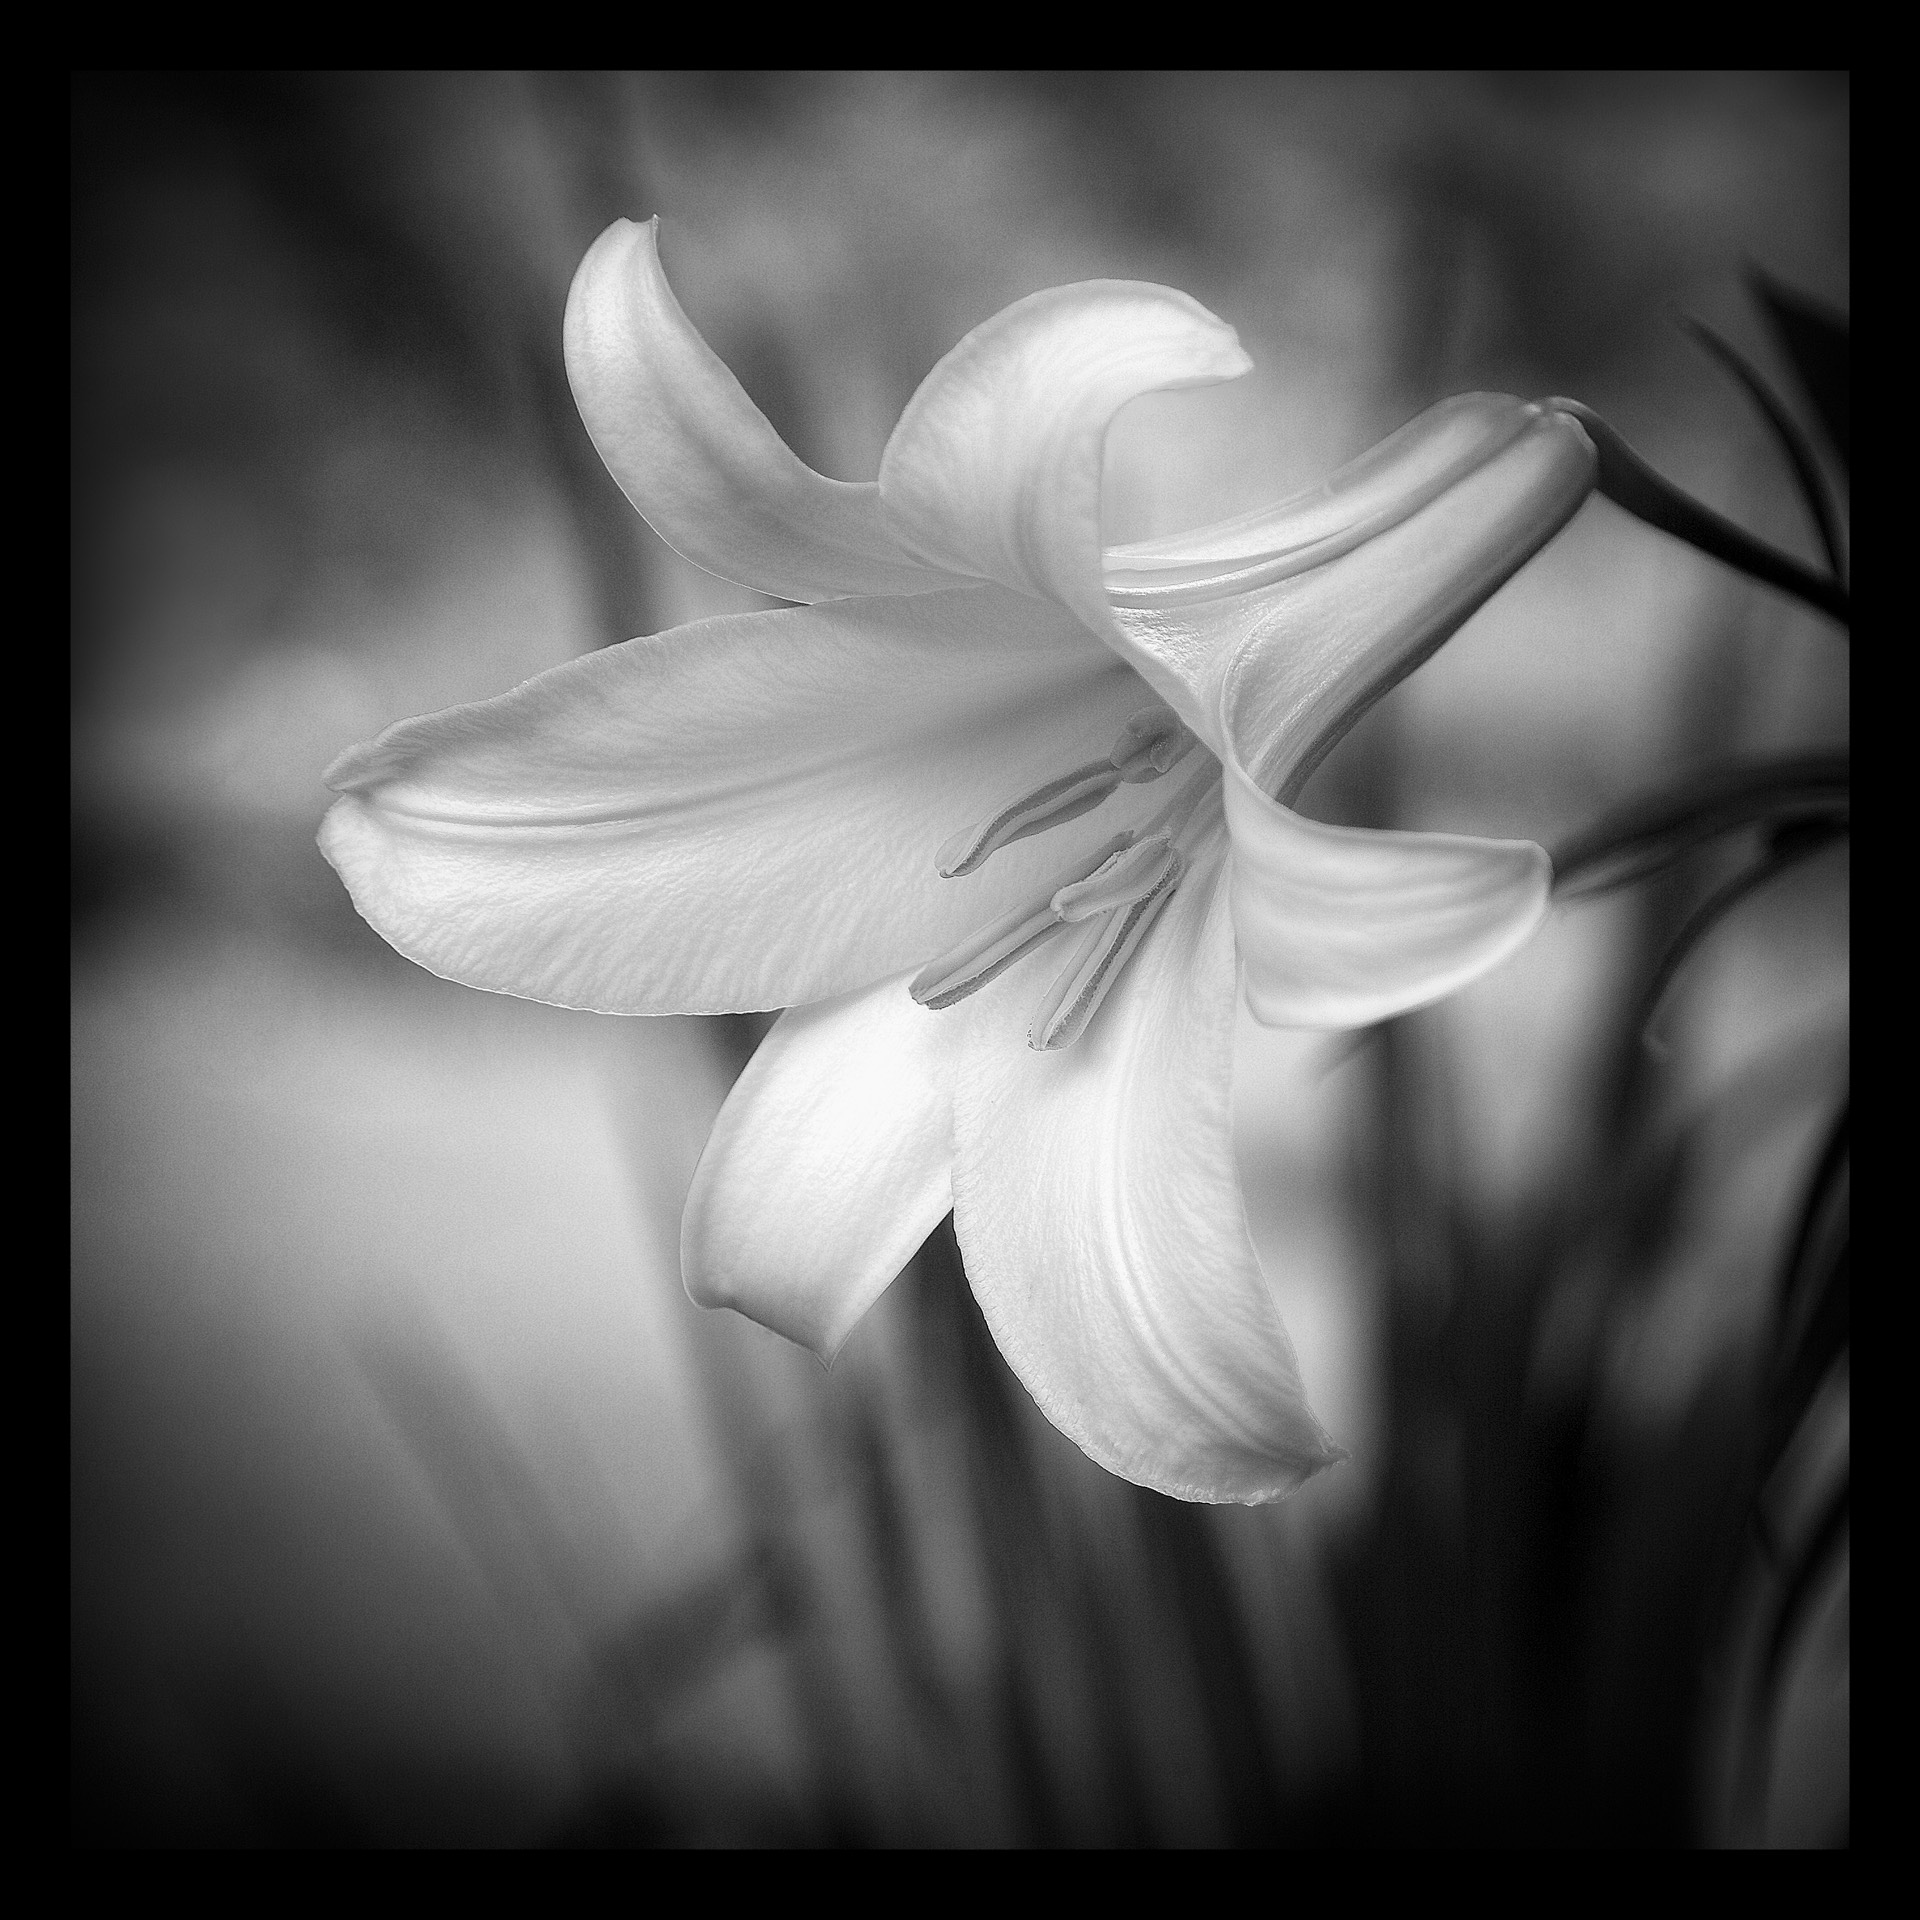 Trumpet Lily - Monochrome Print (Open) - Name Withheld Per Request